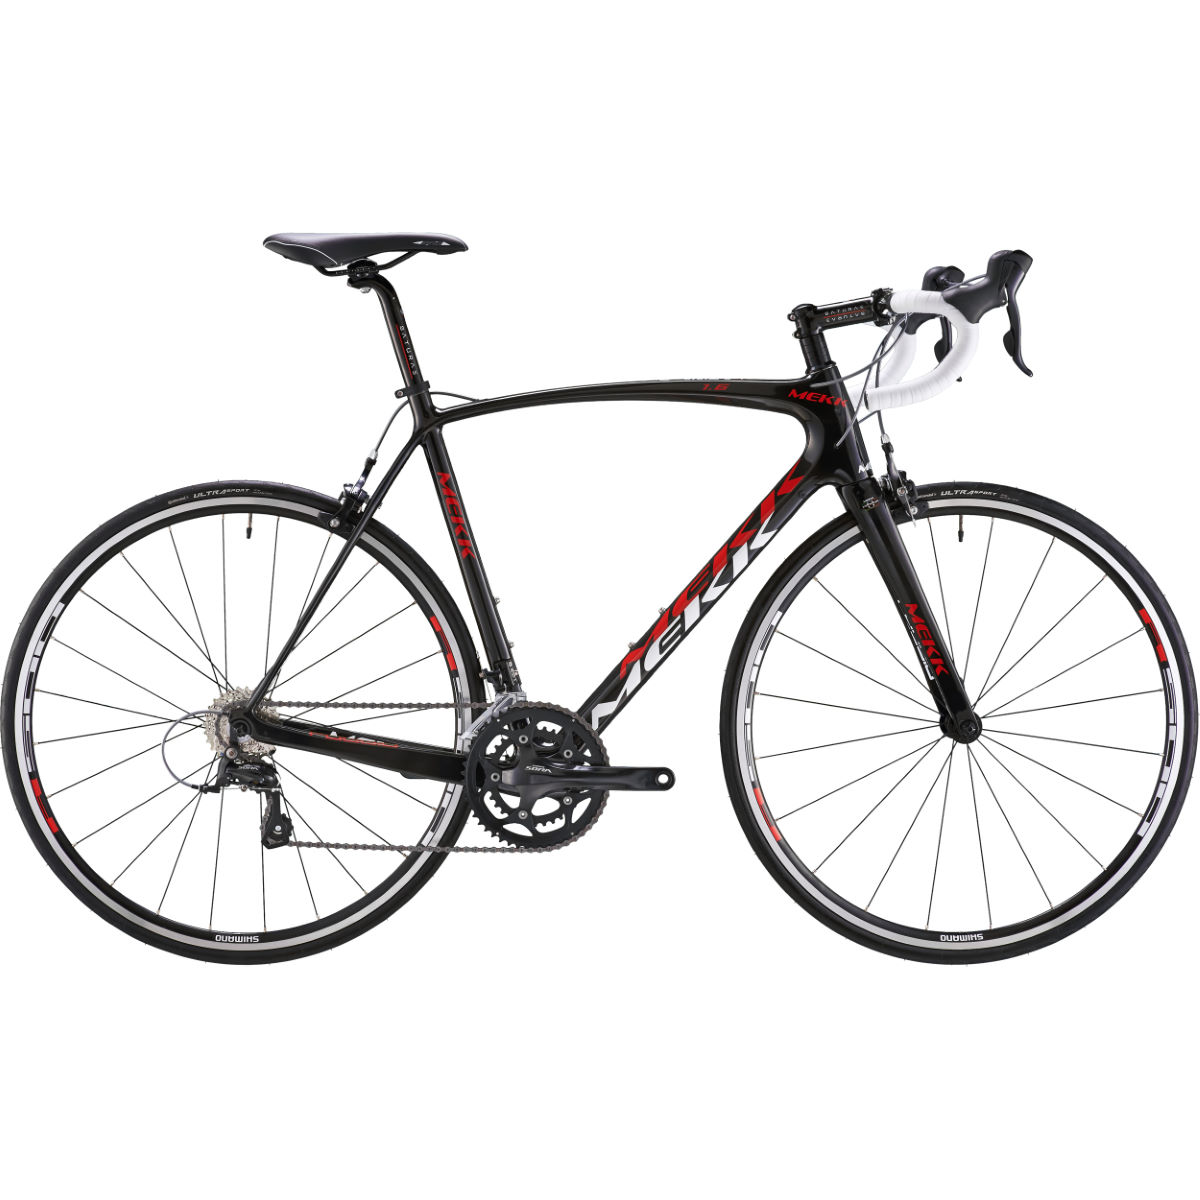 Mekk Poggio 1.5 Sora 2014 - 50cm Red/White | Road Bikes